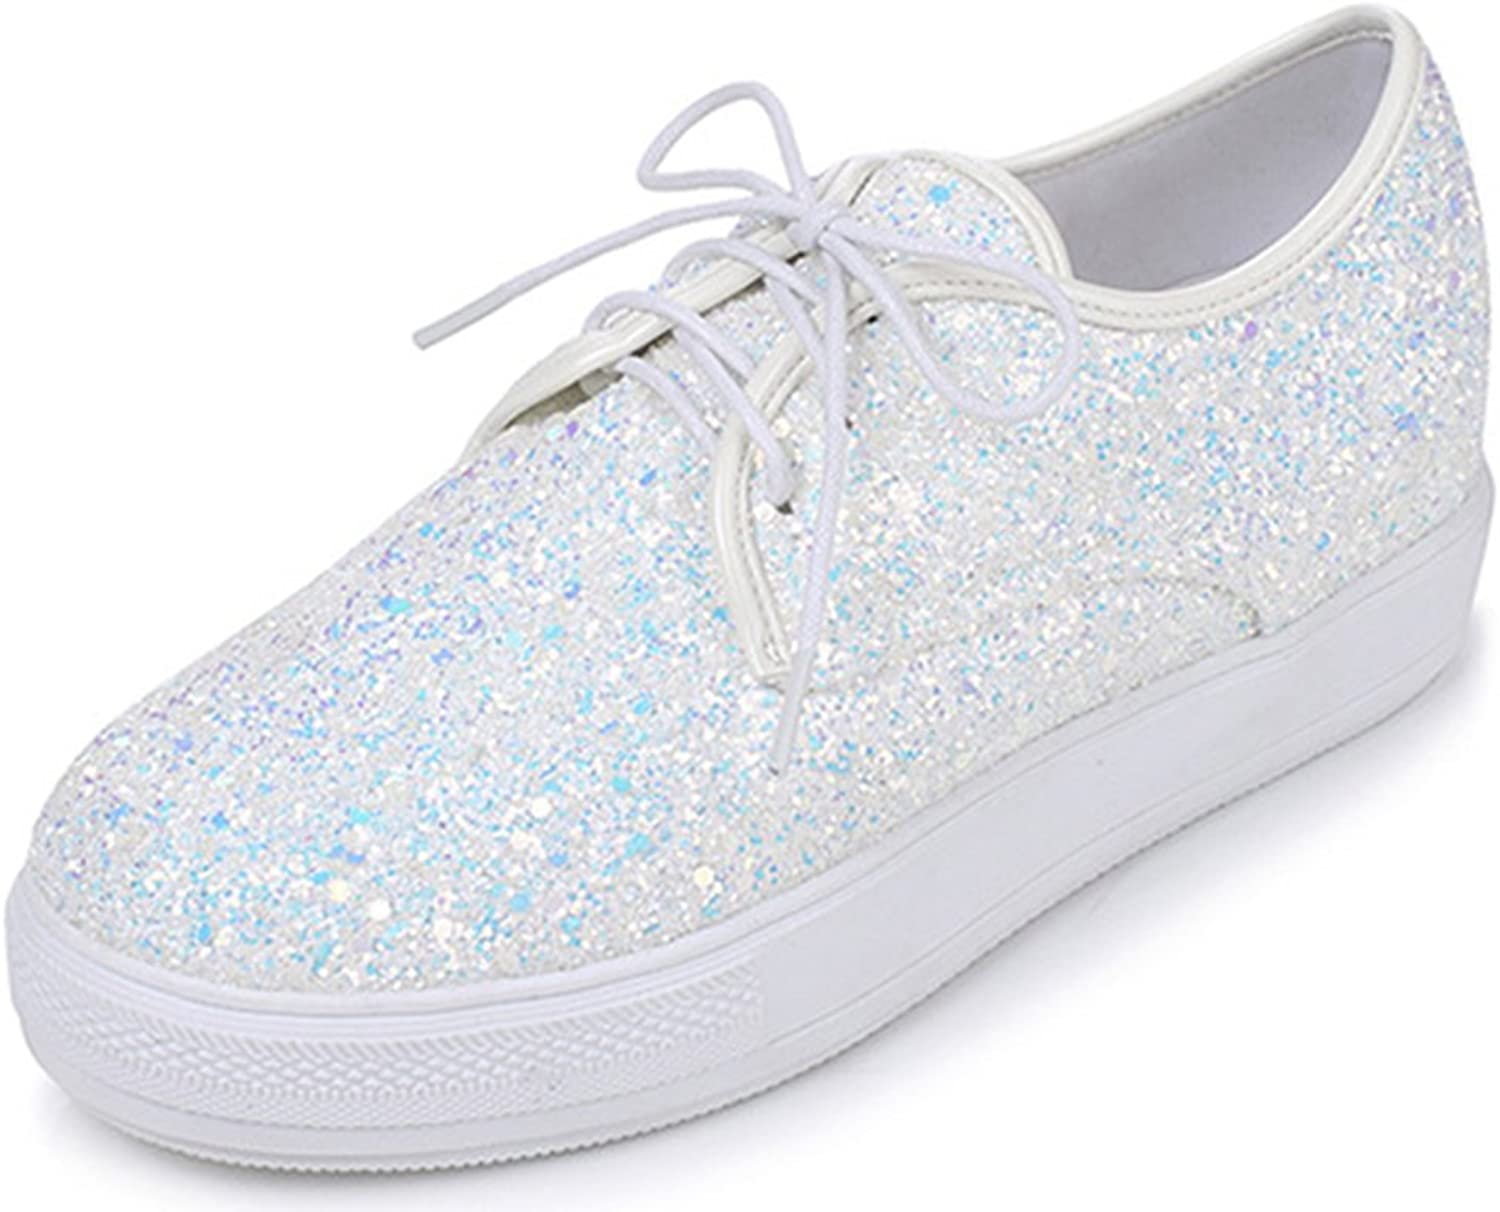 IDIFU Women's Glitter Sequined Low Top Lace up Platform Sneakers Mid Wedge Heels shoes